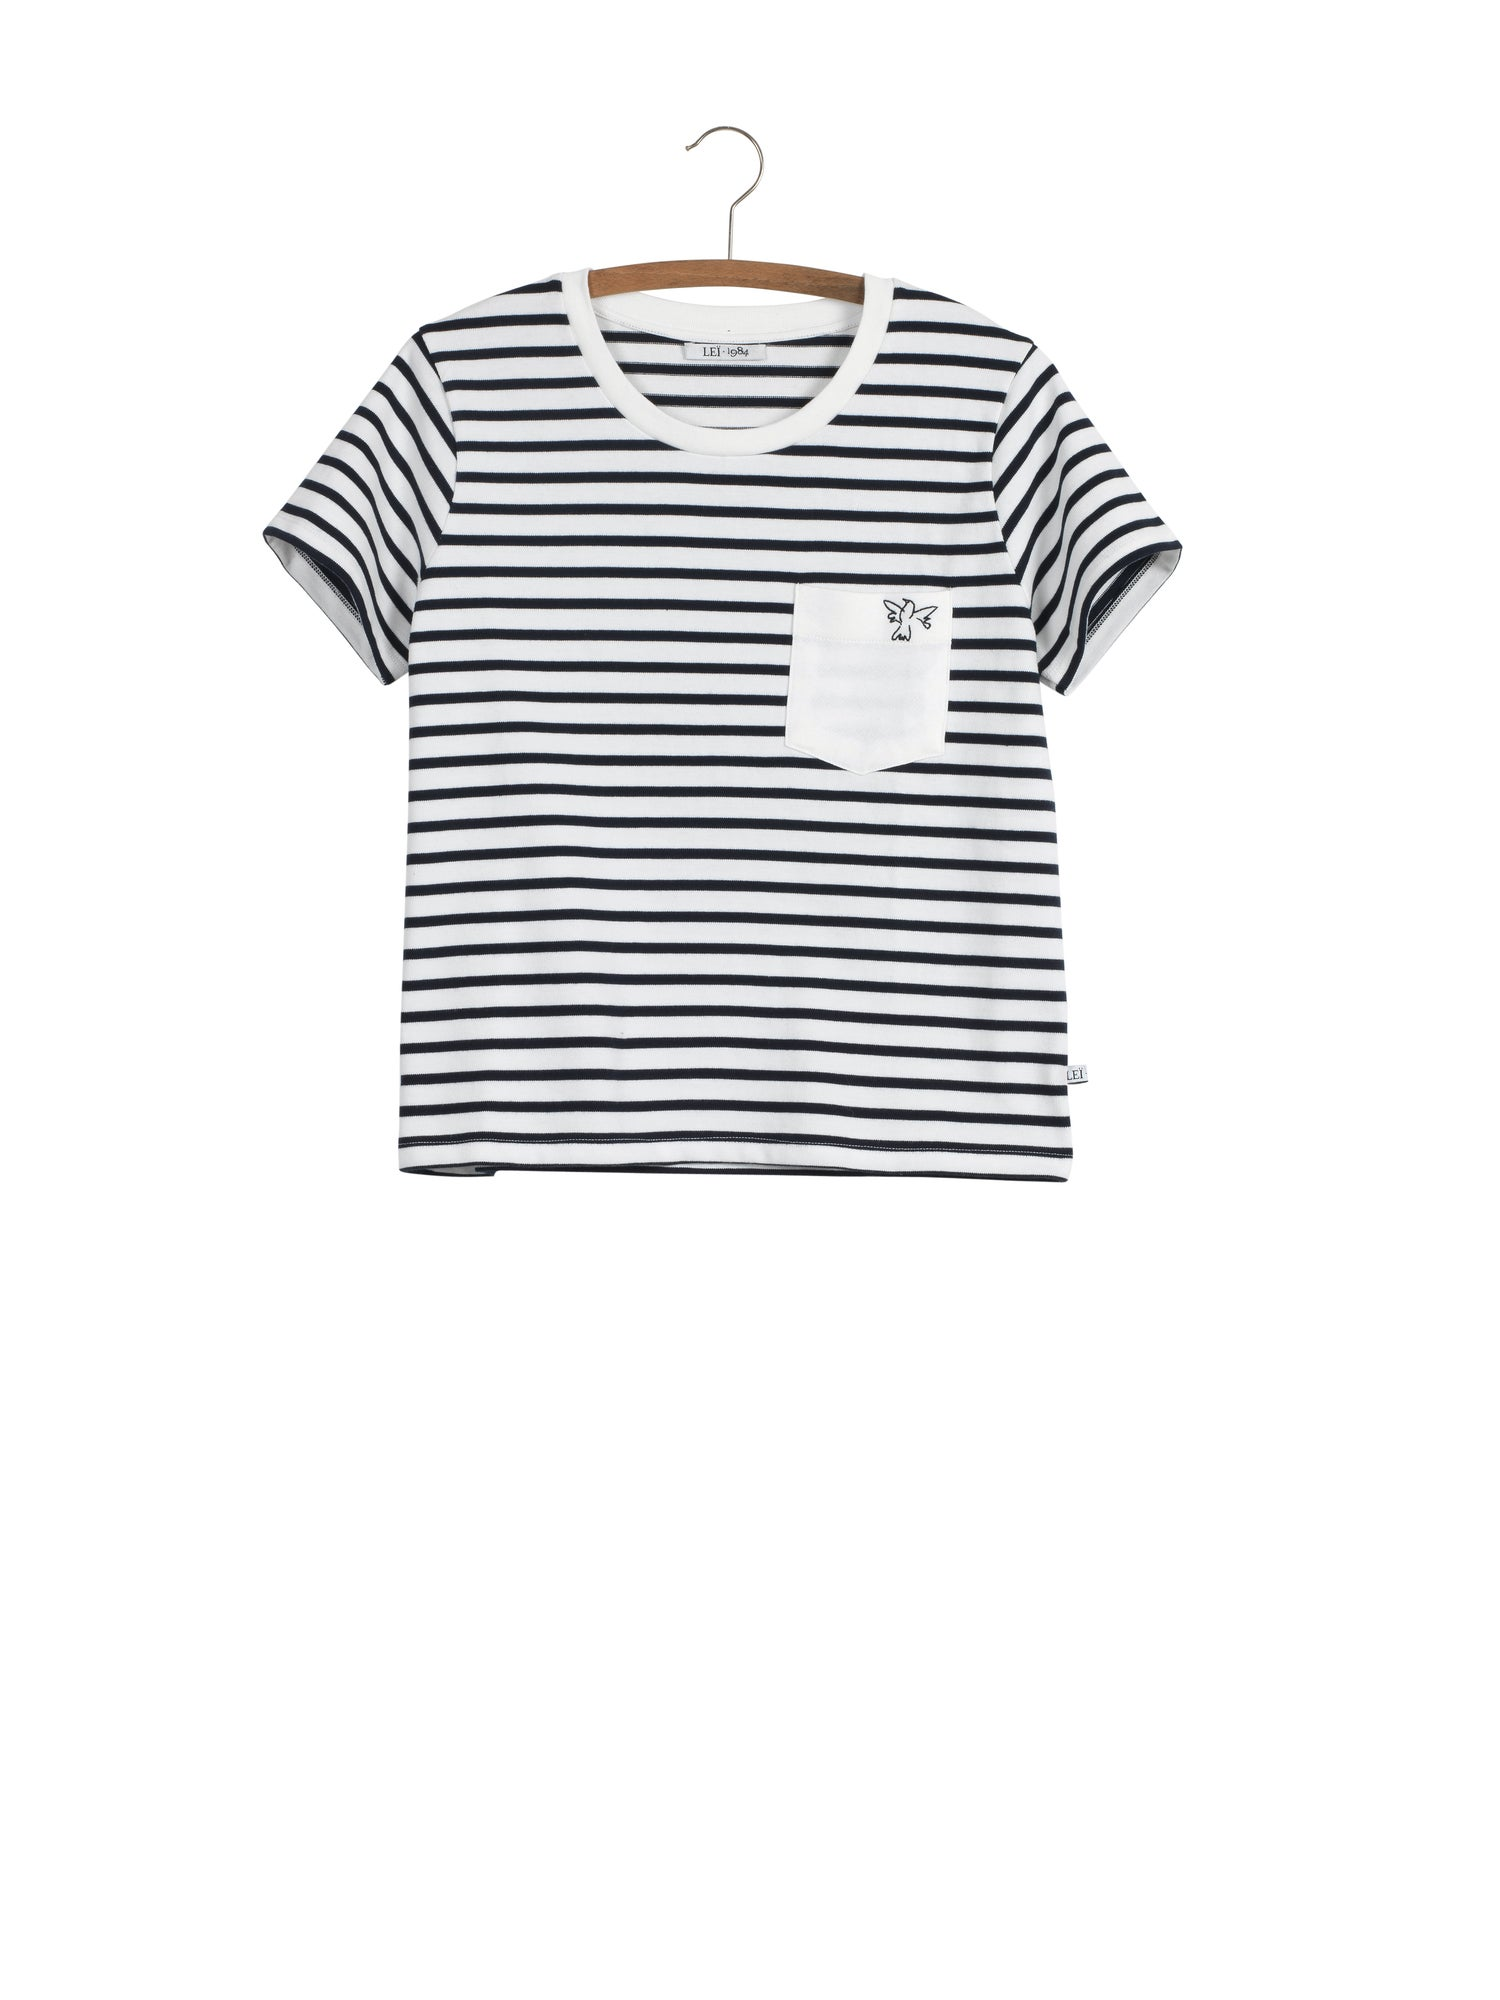 Image of Tee-shirt PIMPRENELLE rayé